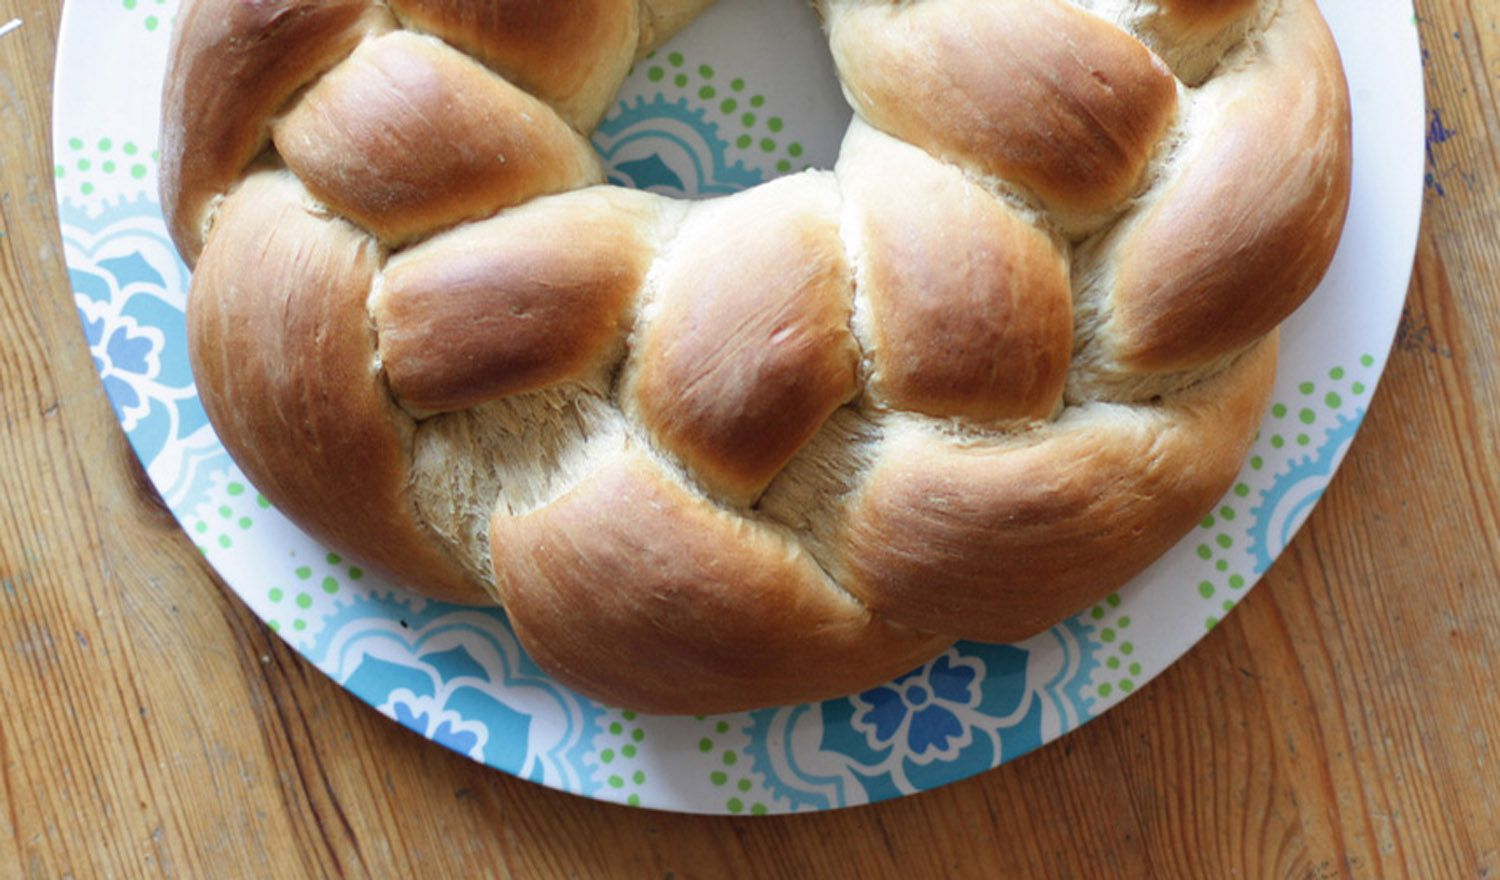 Homemade Braided Yeast Bread With Sweet Filling